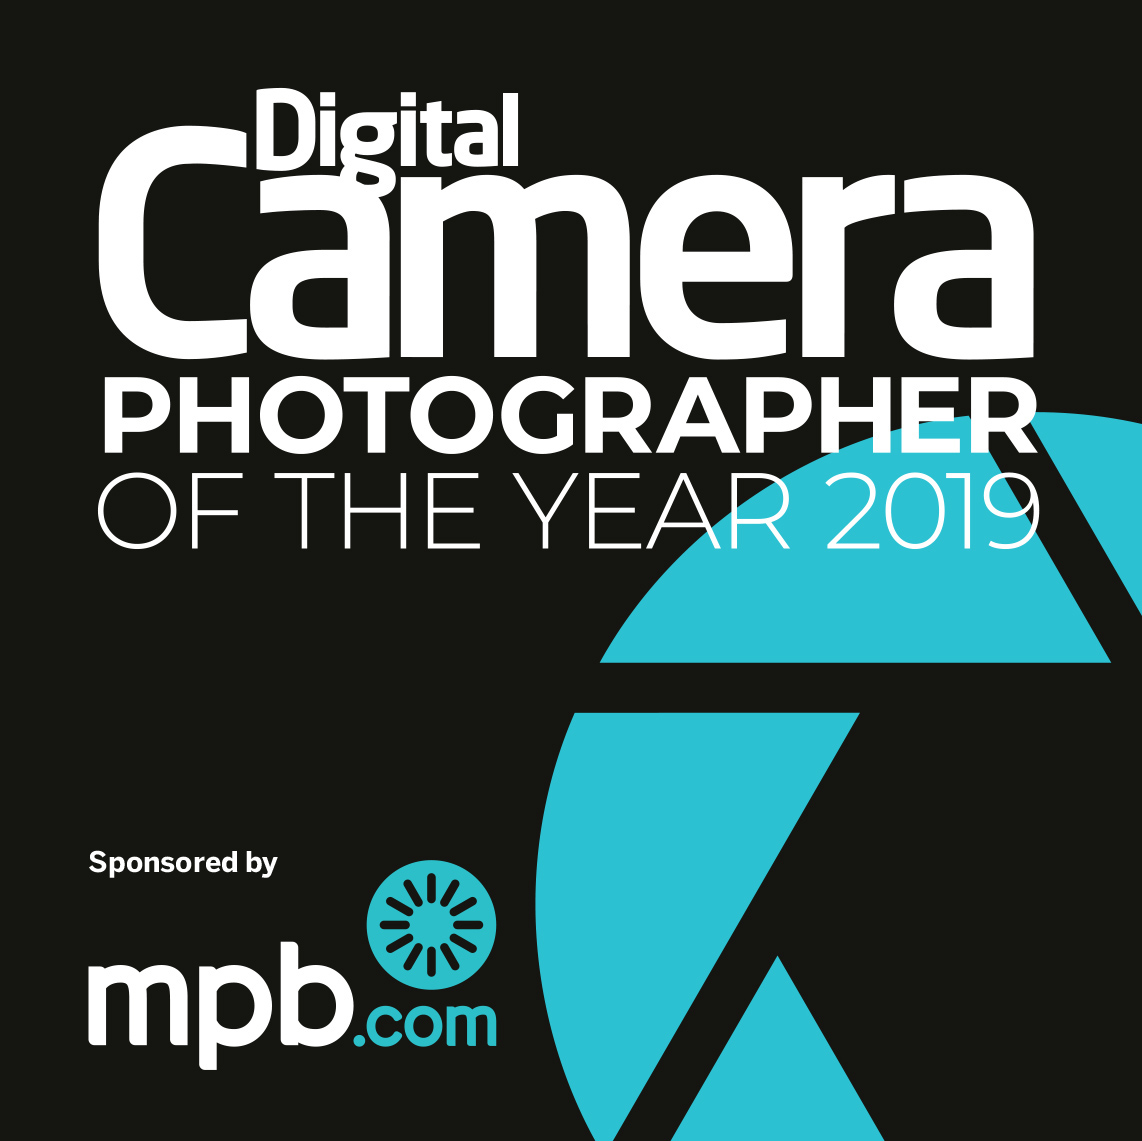 Digital Camera Photographer of the Year 2019 - logo